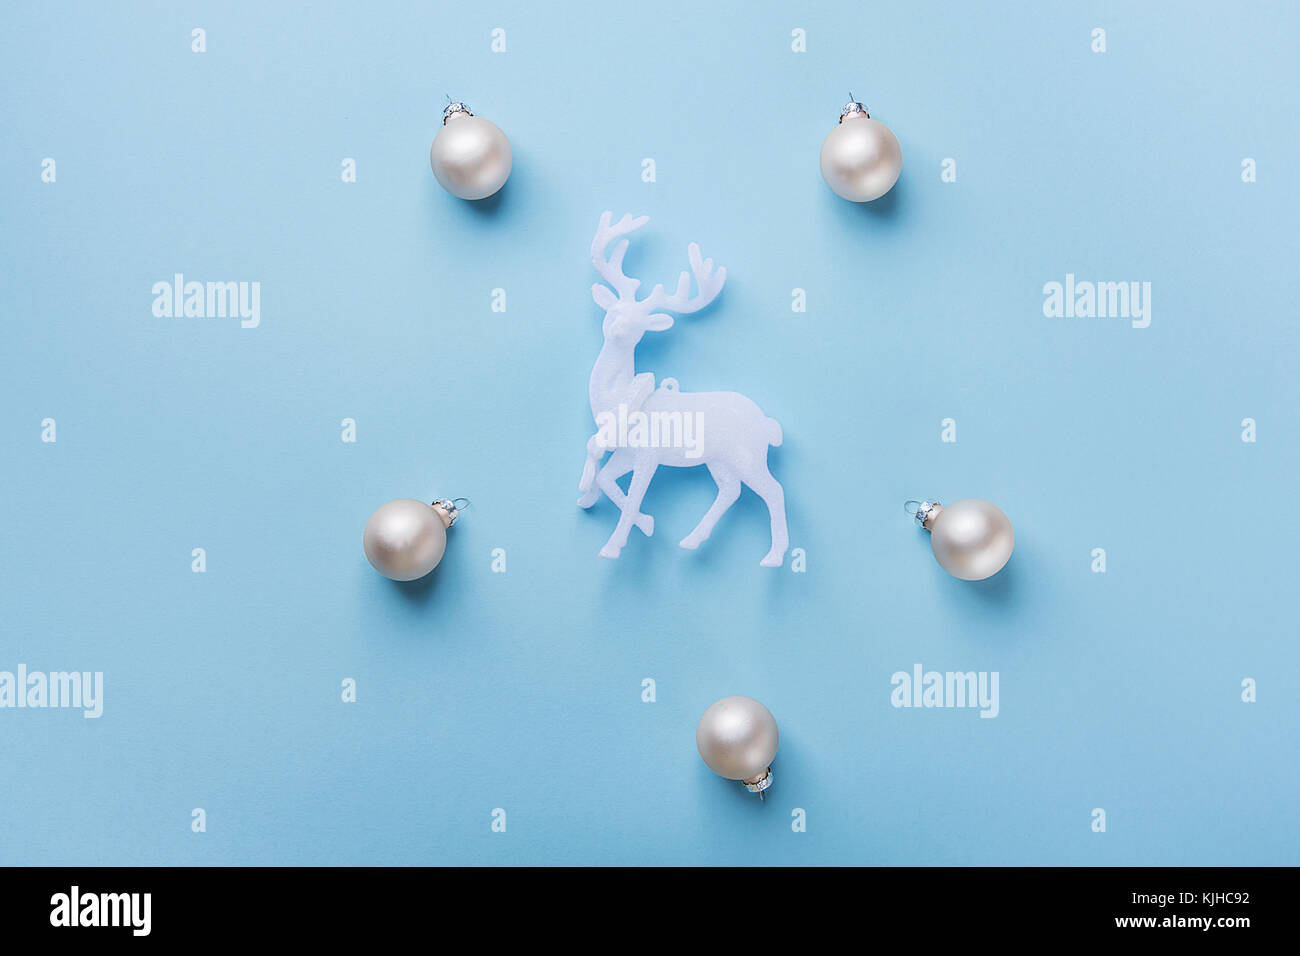 Elegant Christmas New Year Greeting Card Poster White Reindeer Silver Balls Pattern on Light Blue Background. Copy - Stock Image